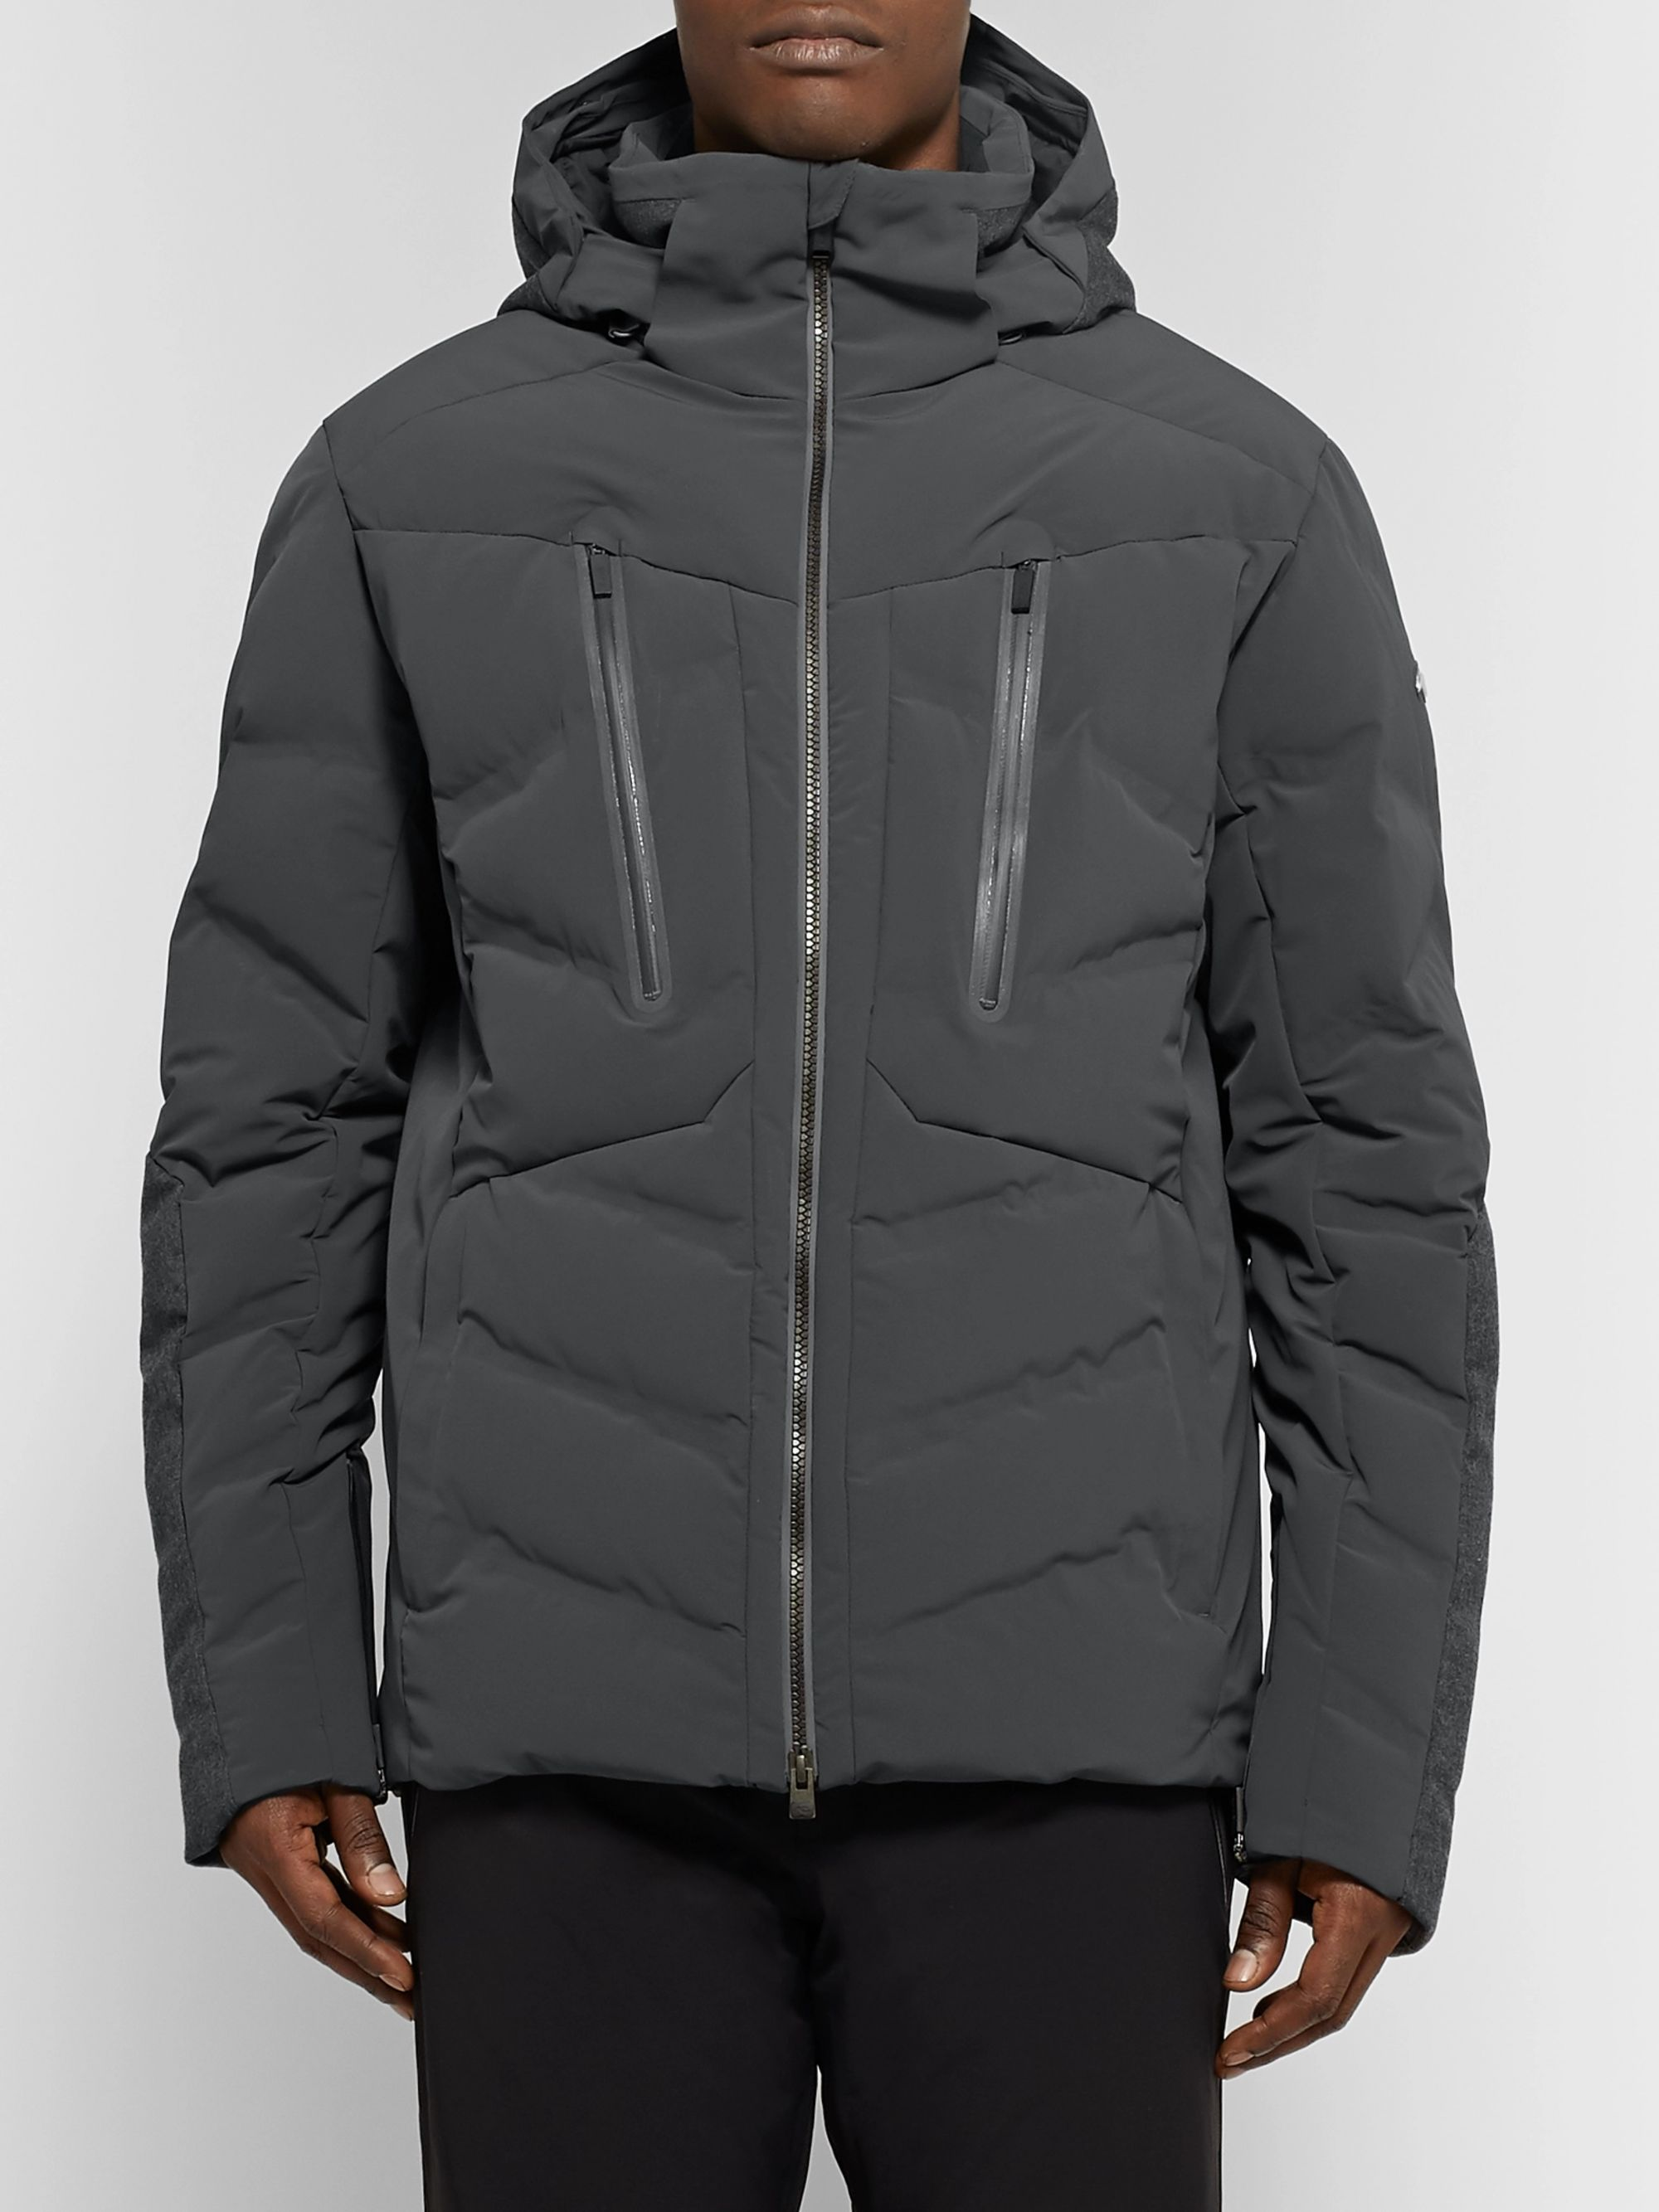 Kjus Linard Wool-Panelled Hooded Ski Jacket